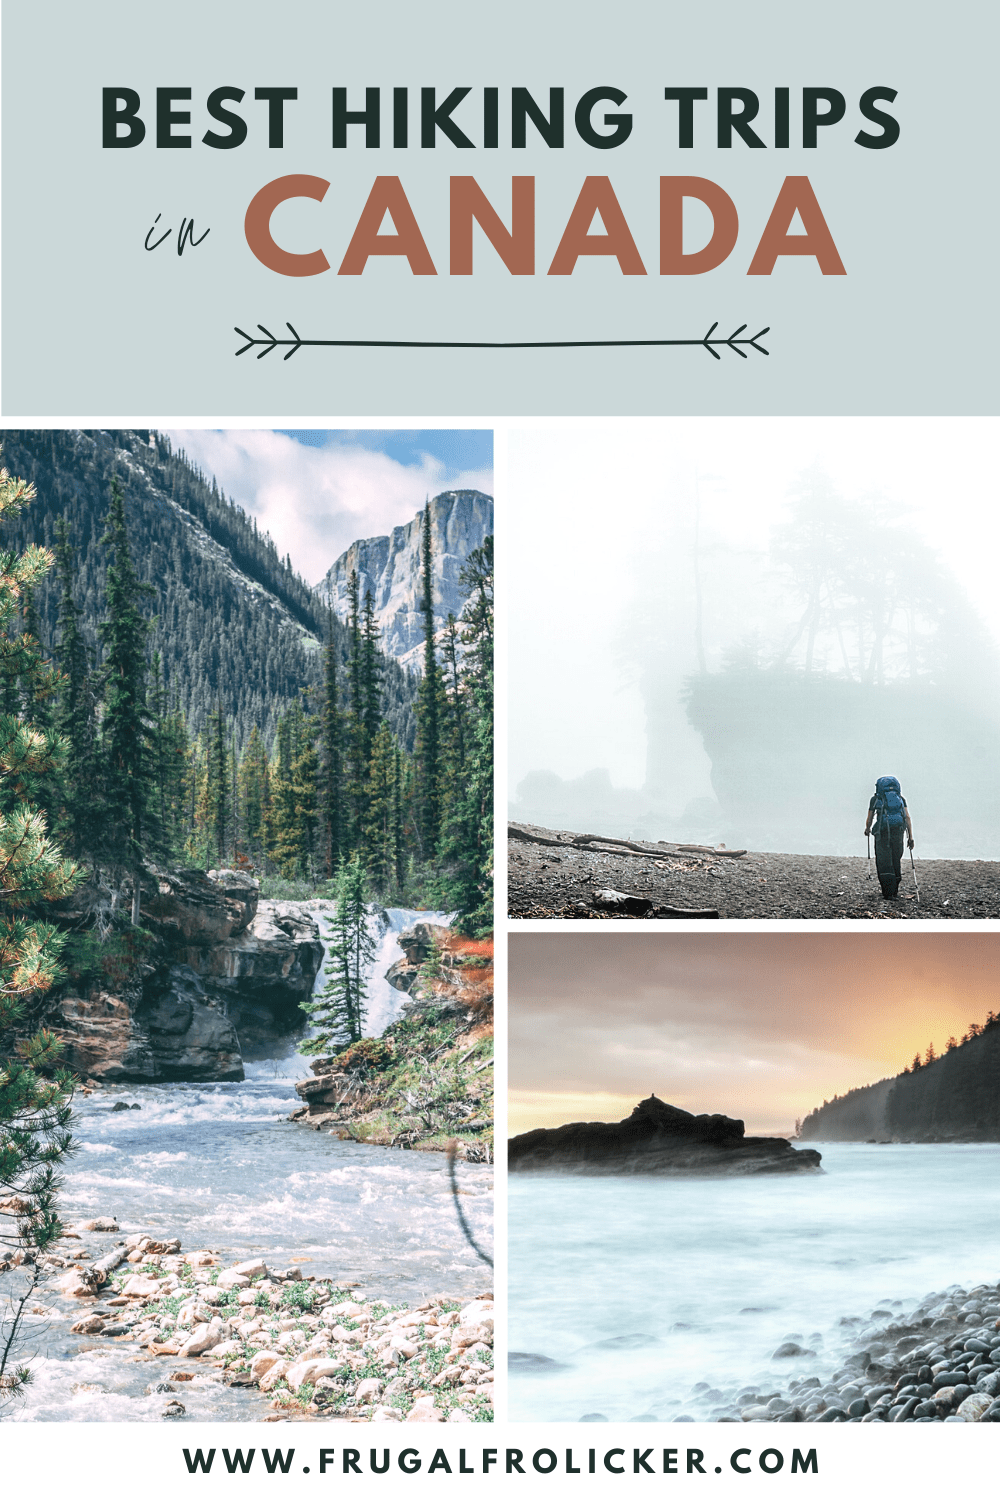 Hiking Trips in Canada - The Best Backpacking in Canada